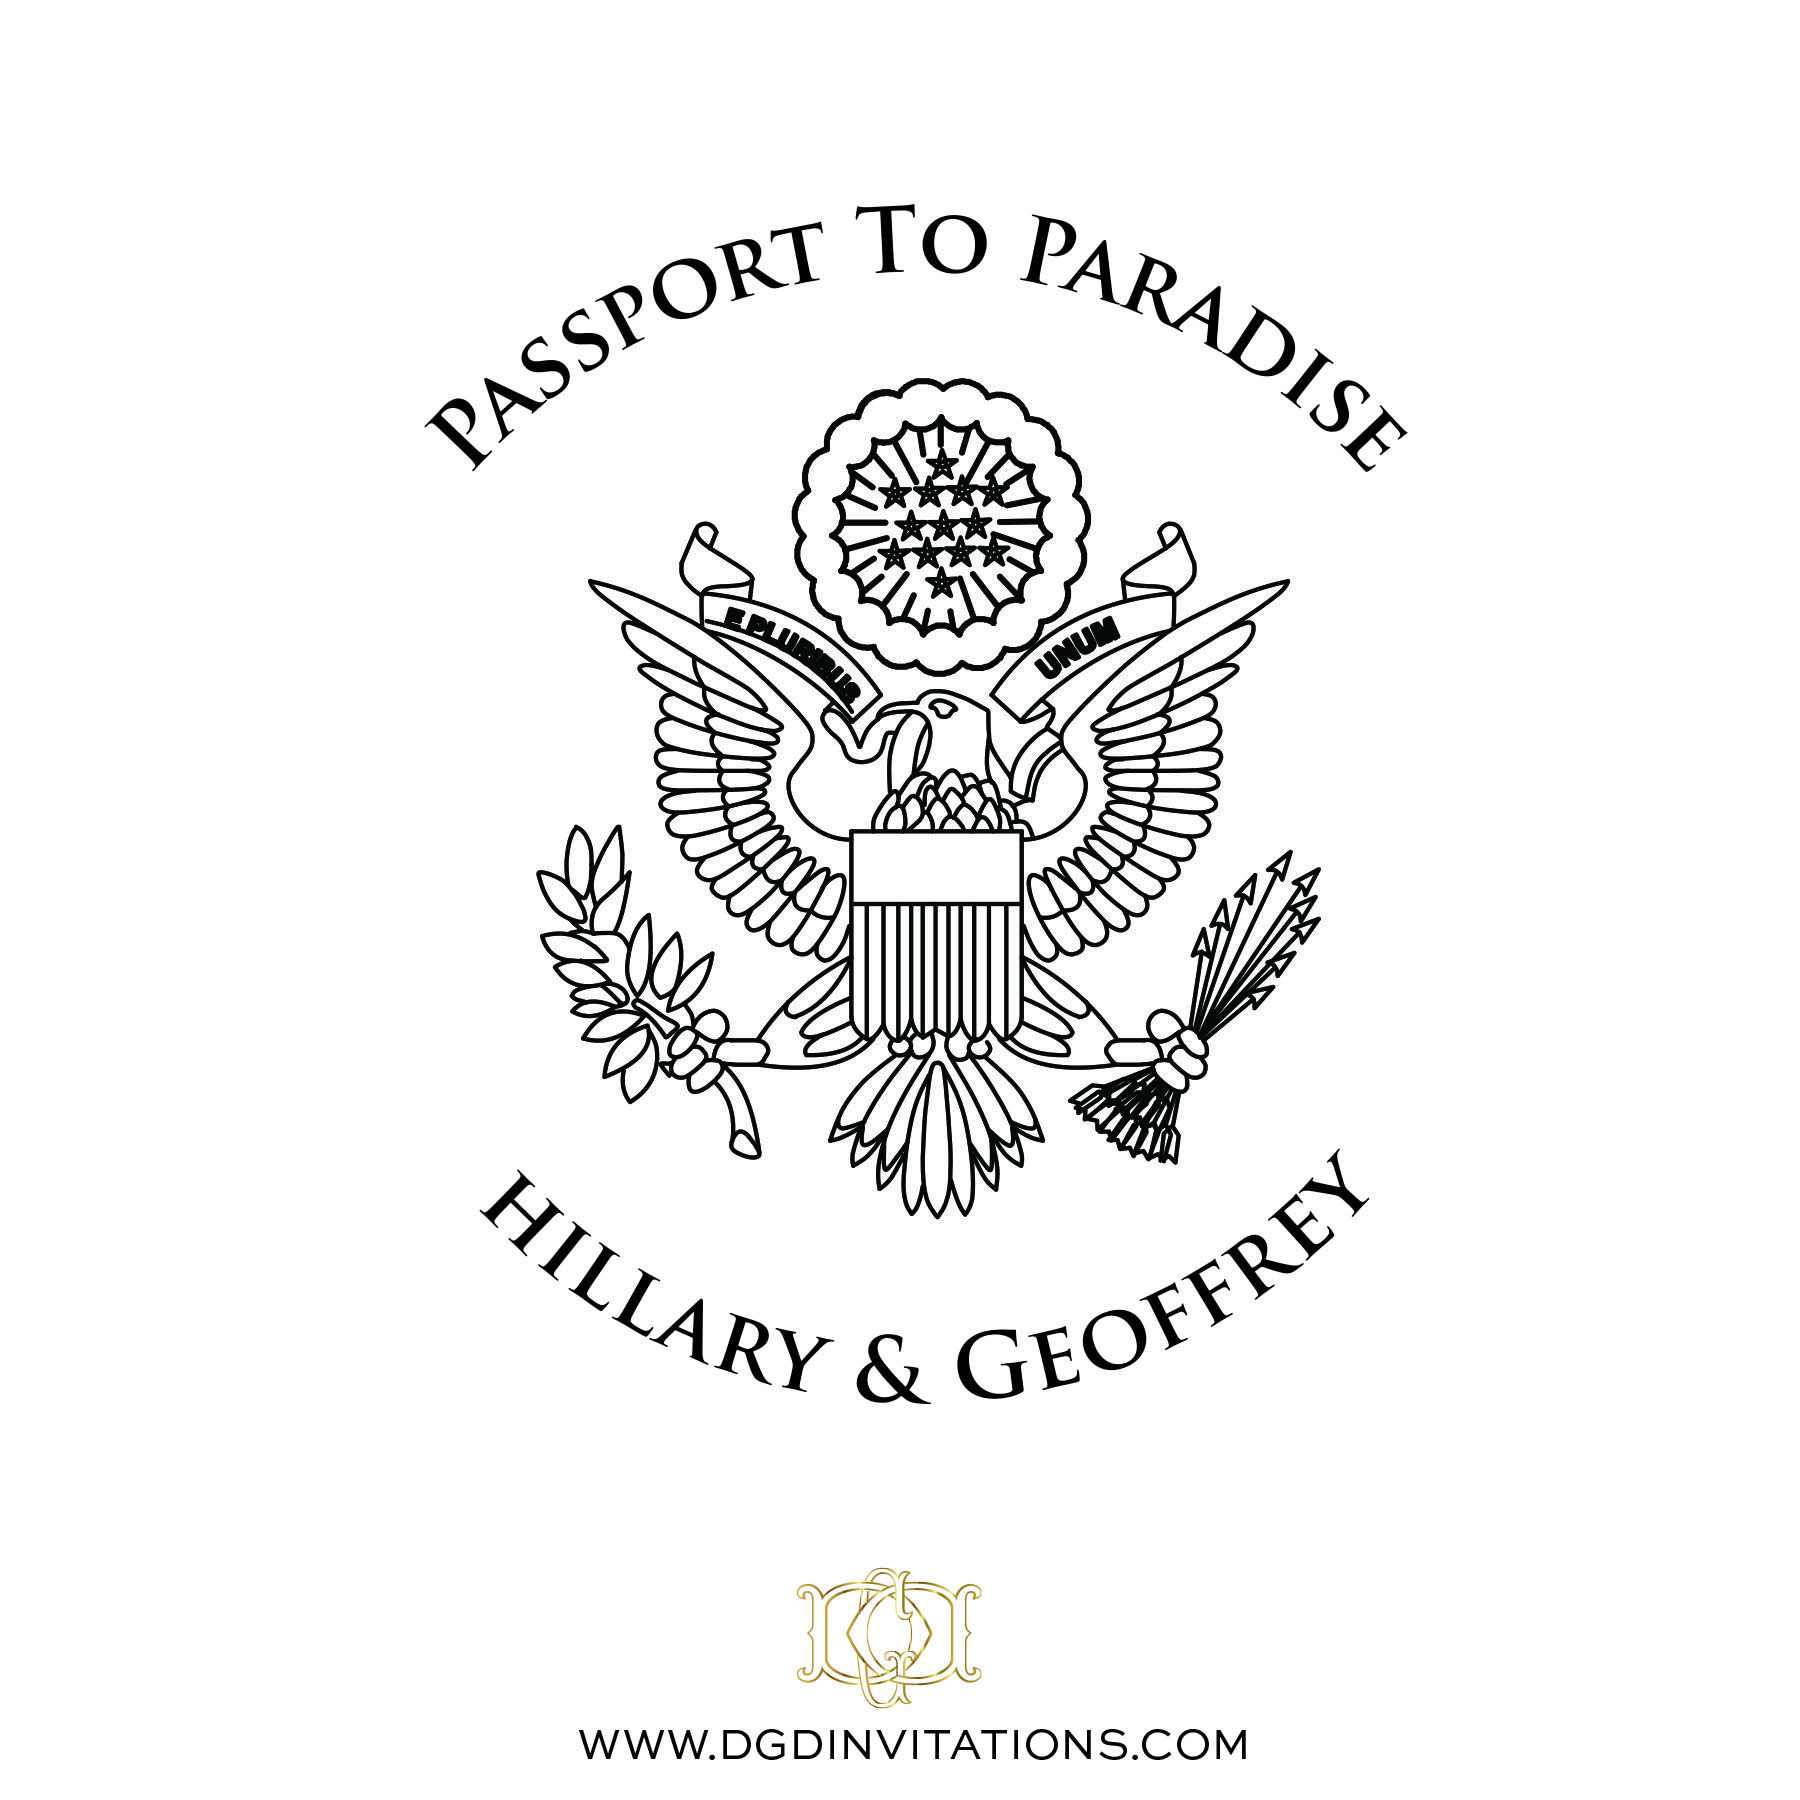 stamps for wedding invitations Custom Rubber Stamp Passport to Paradise Wedding Invitation Cover Save The Date DIY Boarding Pass